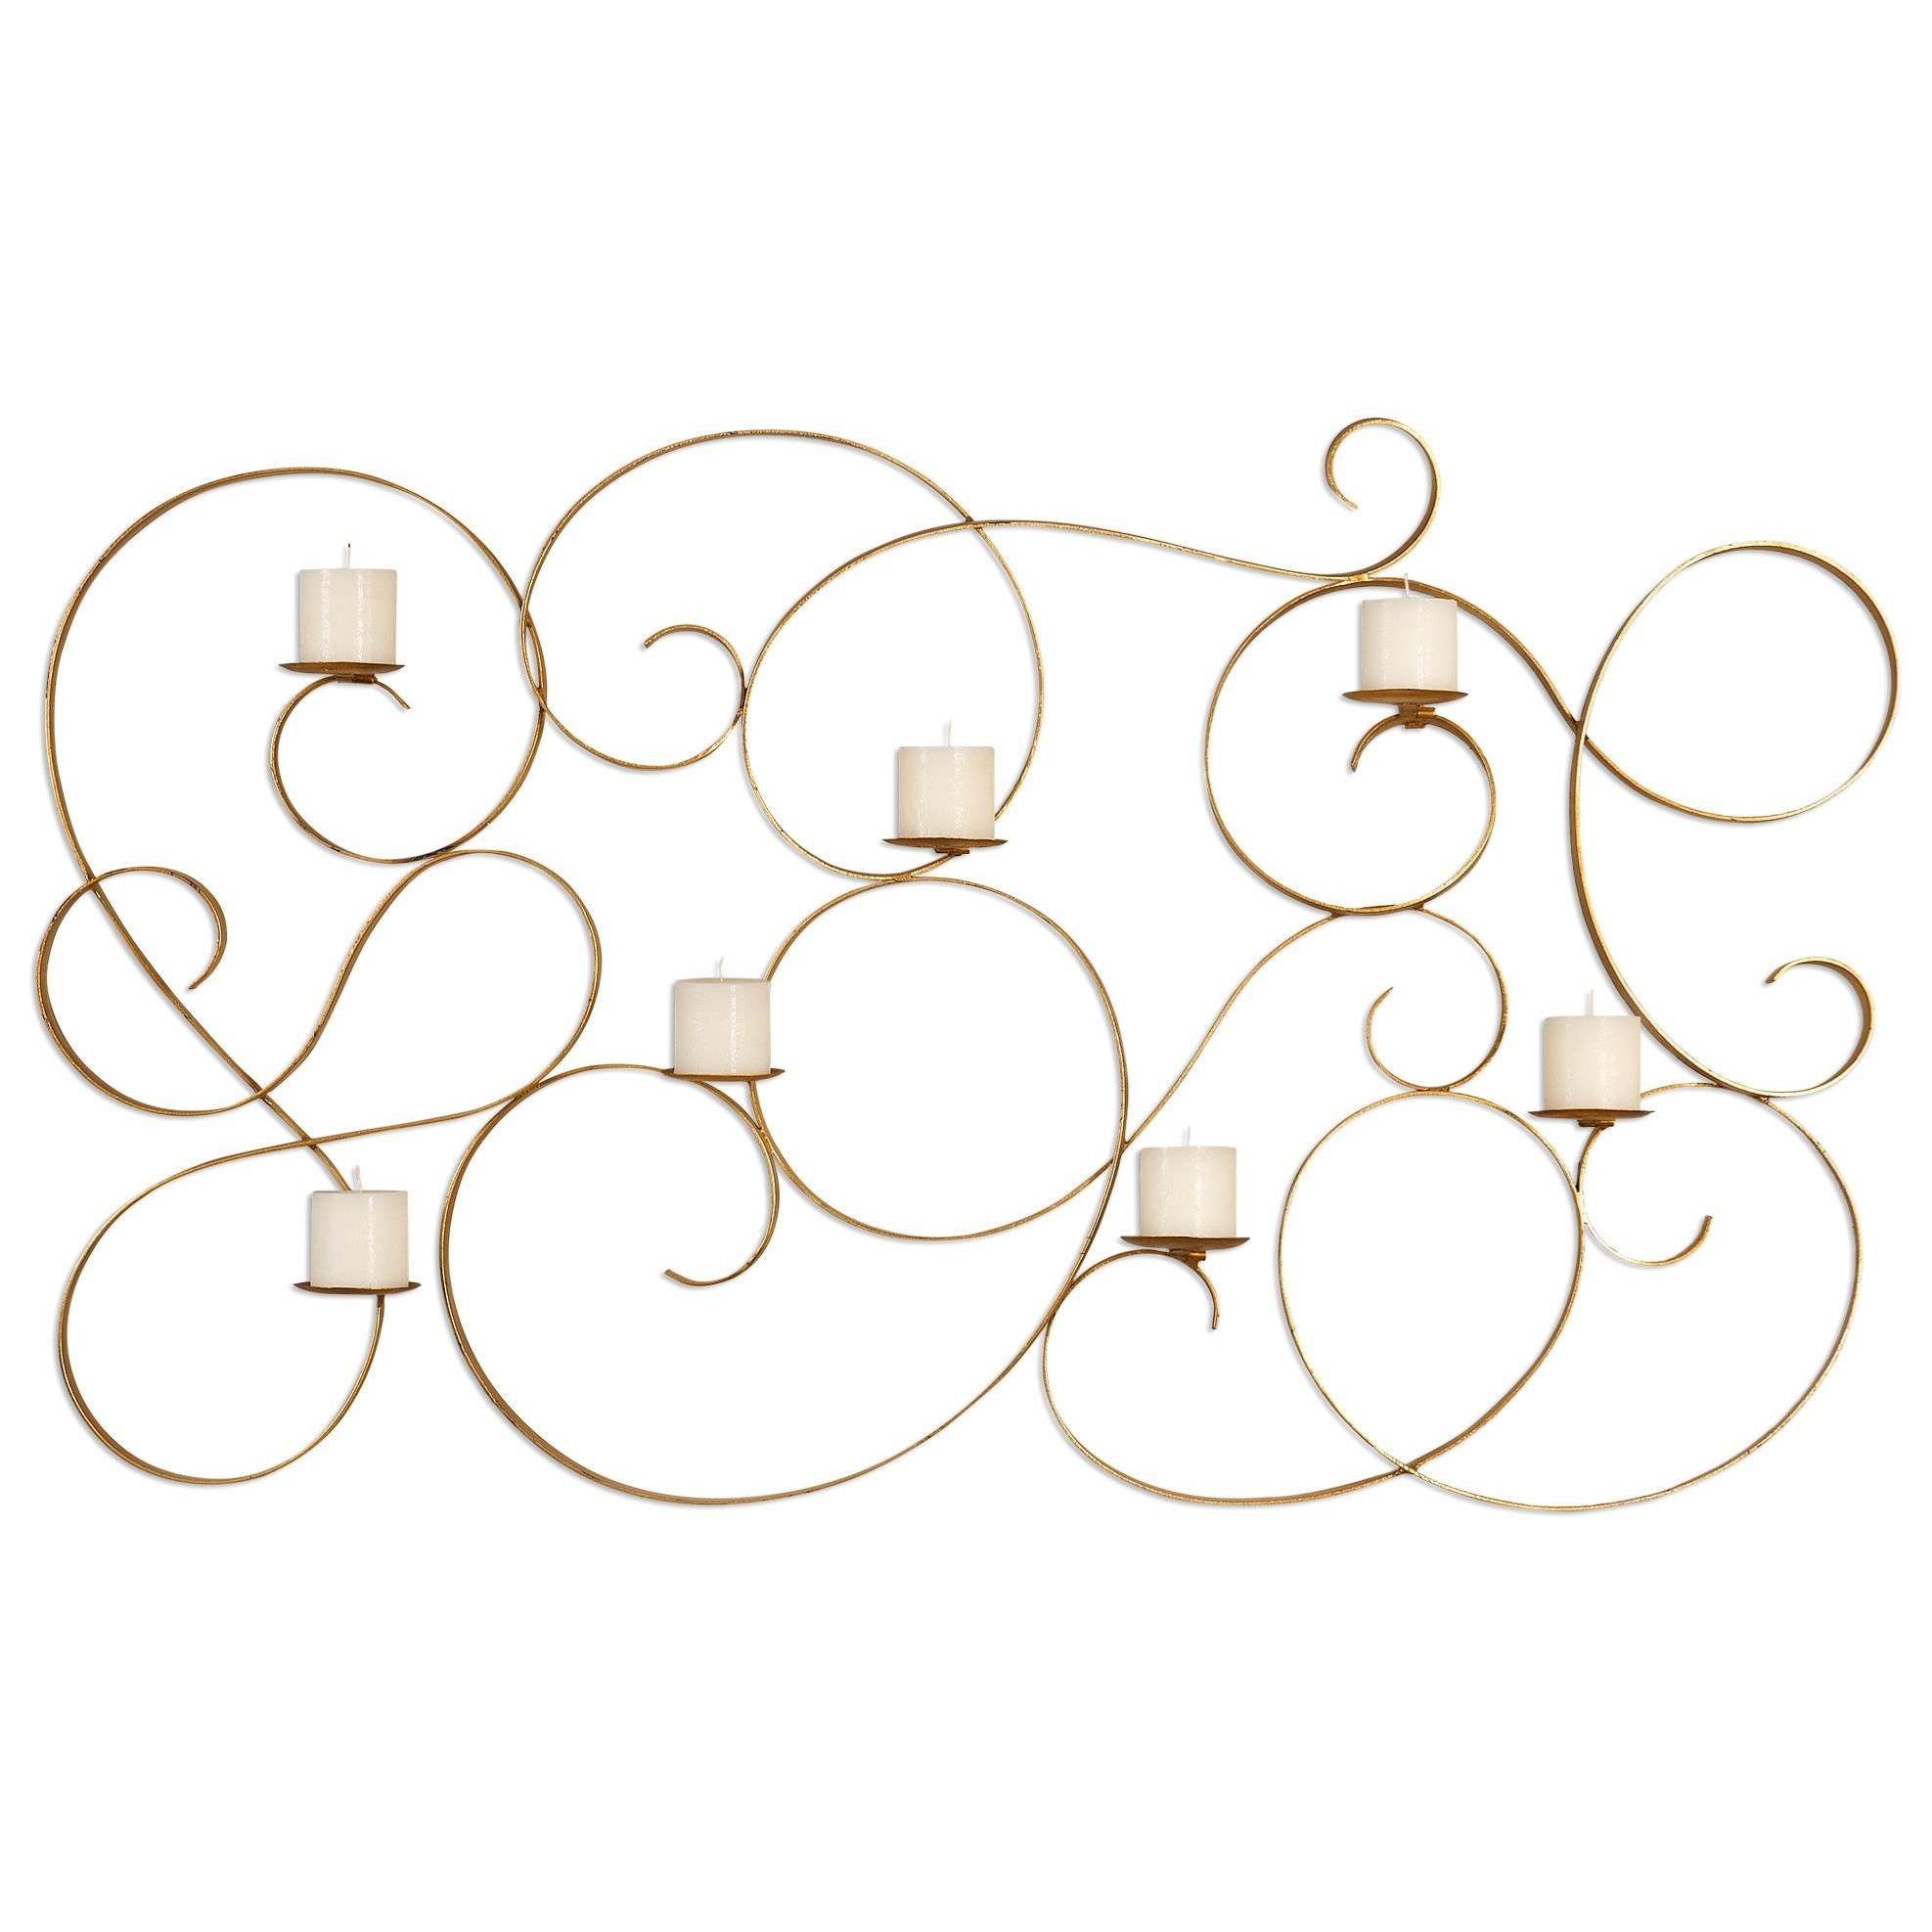 Uttermost Alternative Wall Decor Corinne 7 Candle Wall Sconce - Item Number: 04030